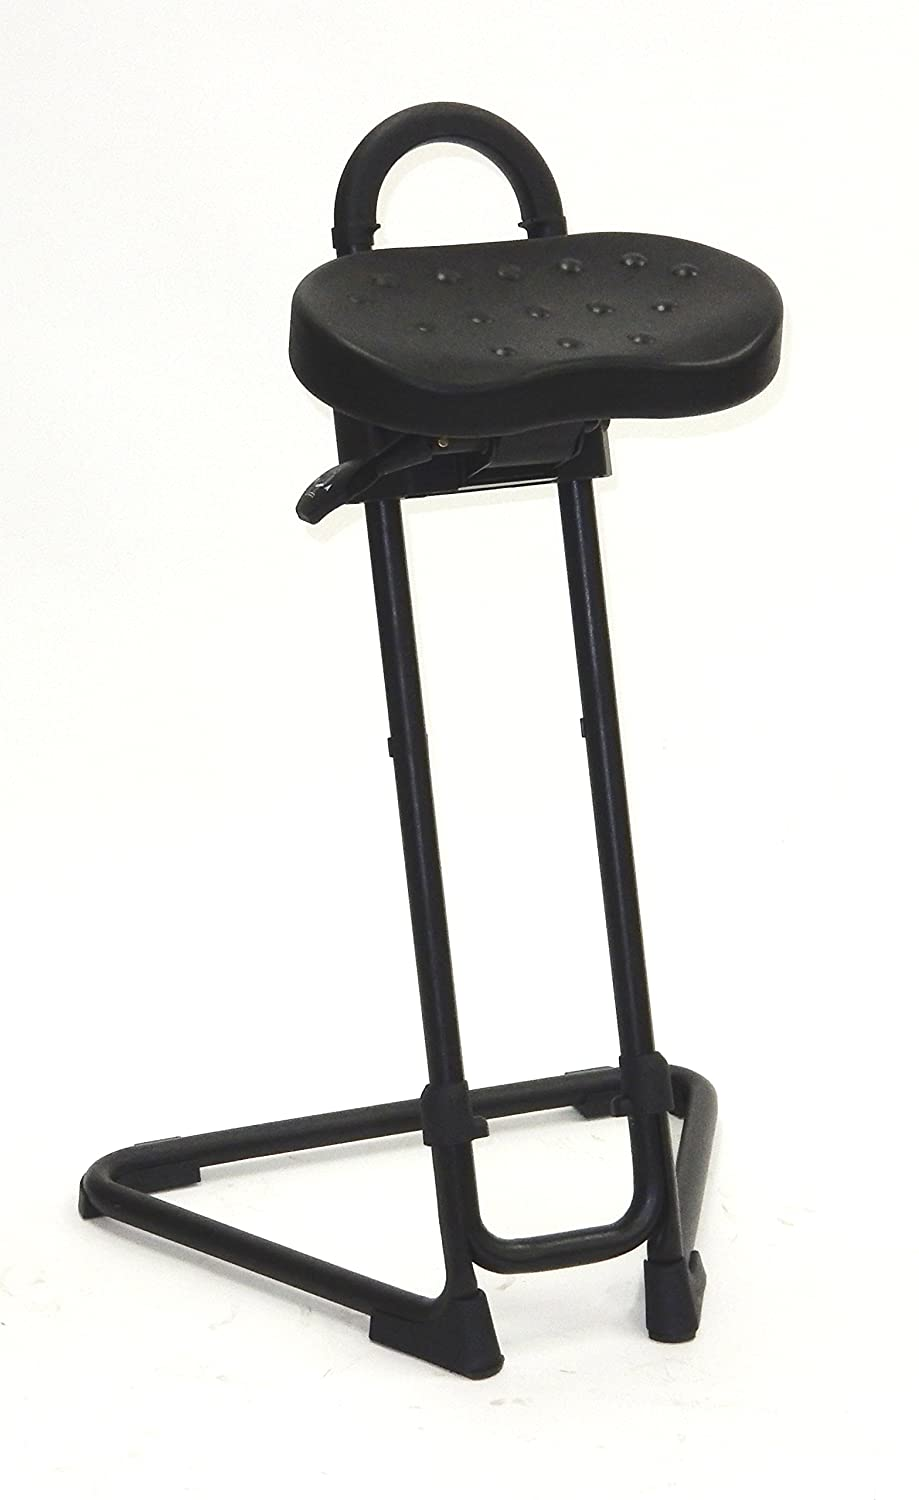 sc 1 st  Amazon.com & Shopsol 1010241 Ergonomic Sit Stand Stool - - Amazon.com islam-shia.org